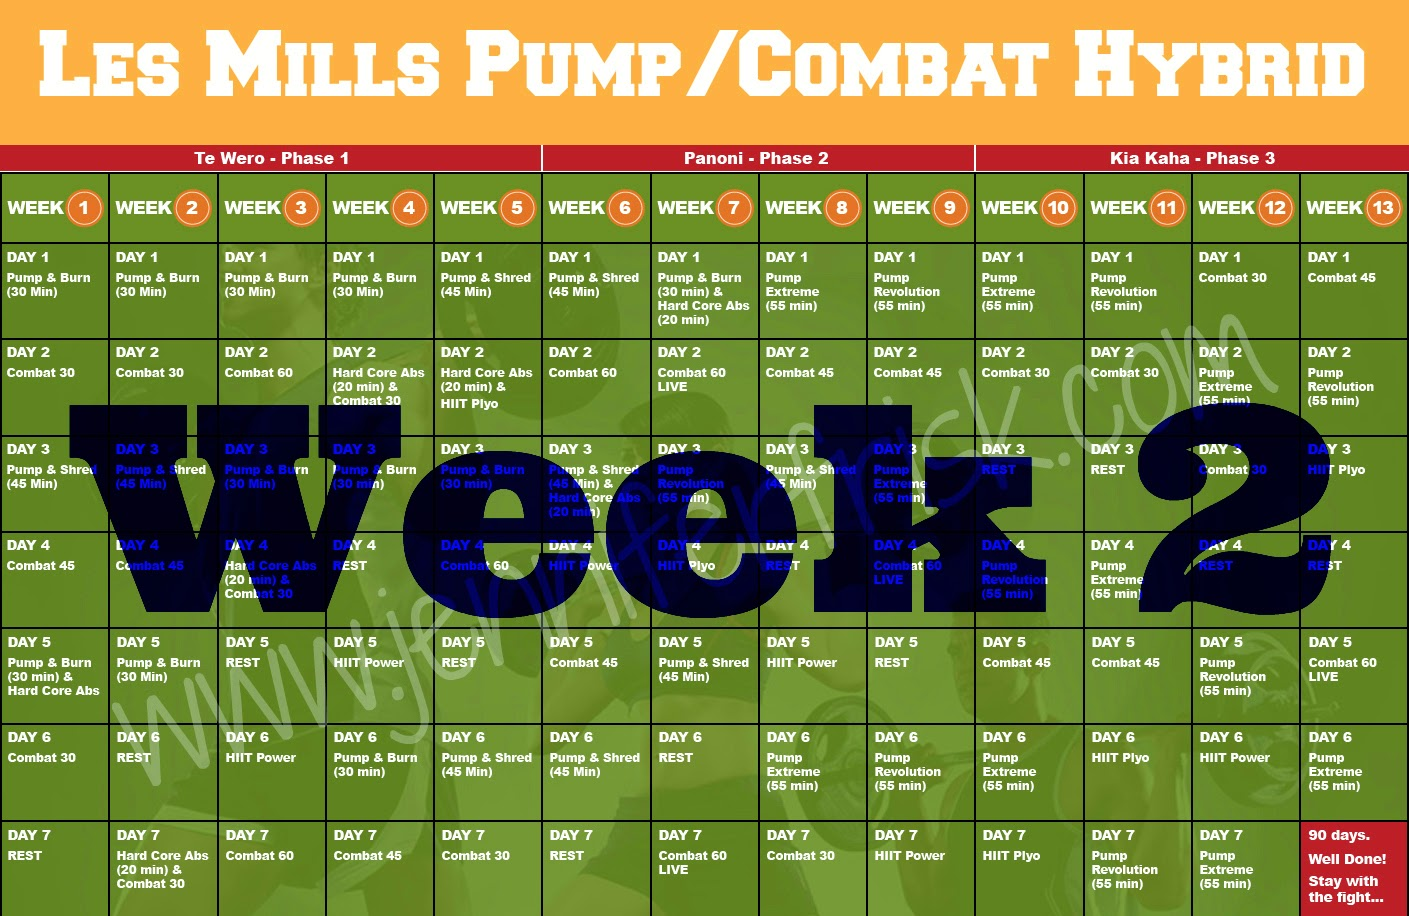 Les Mills Pump/Combat Hybrid - Week 2 Review